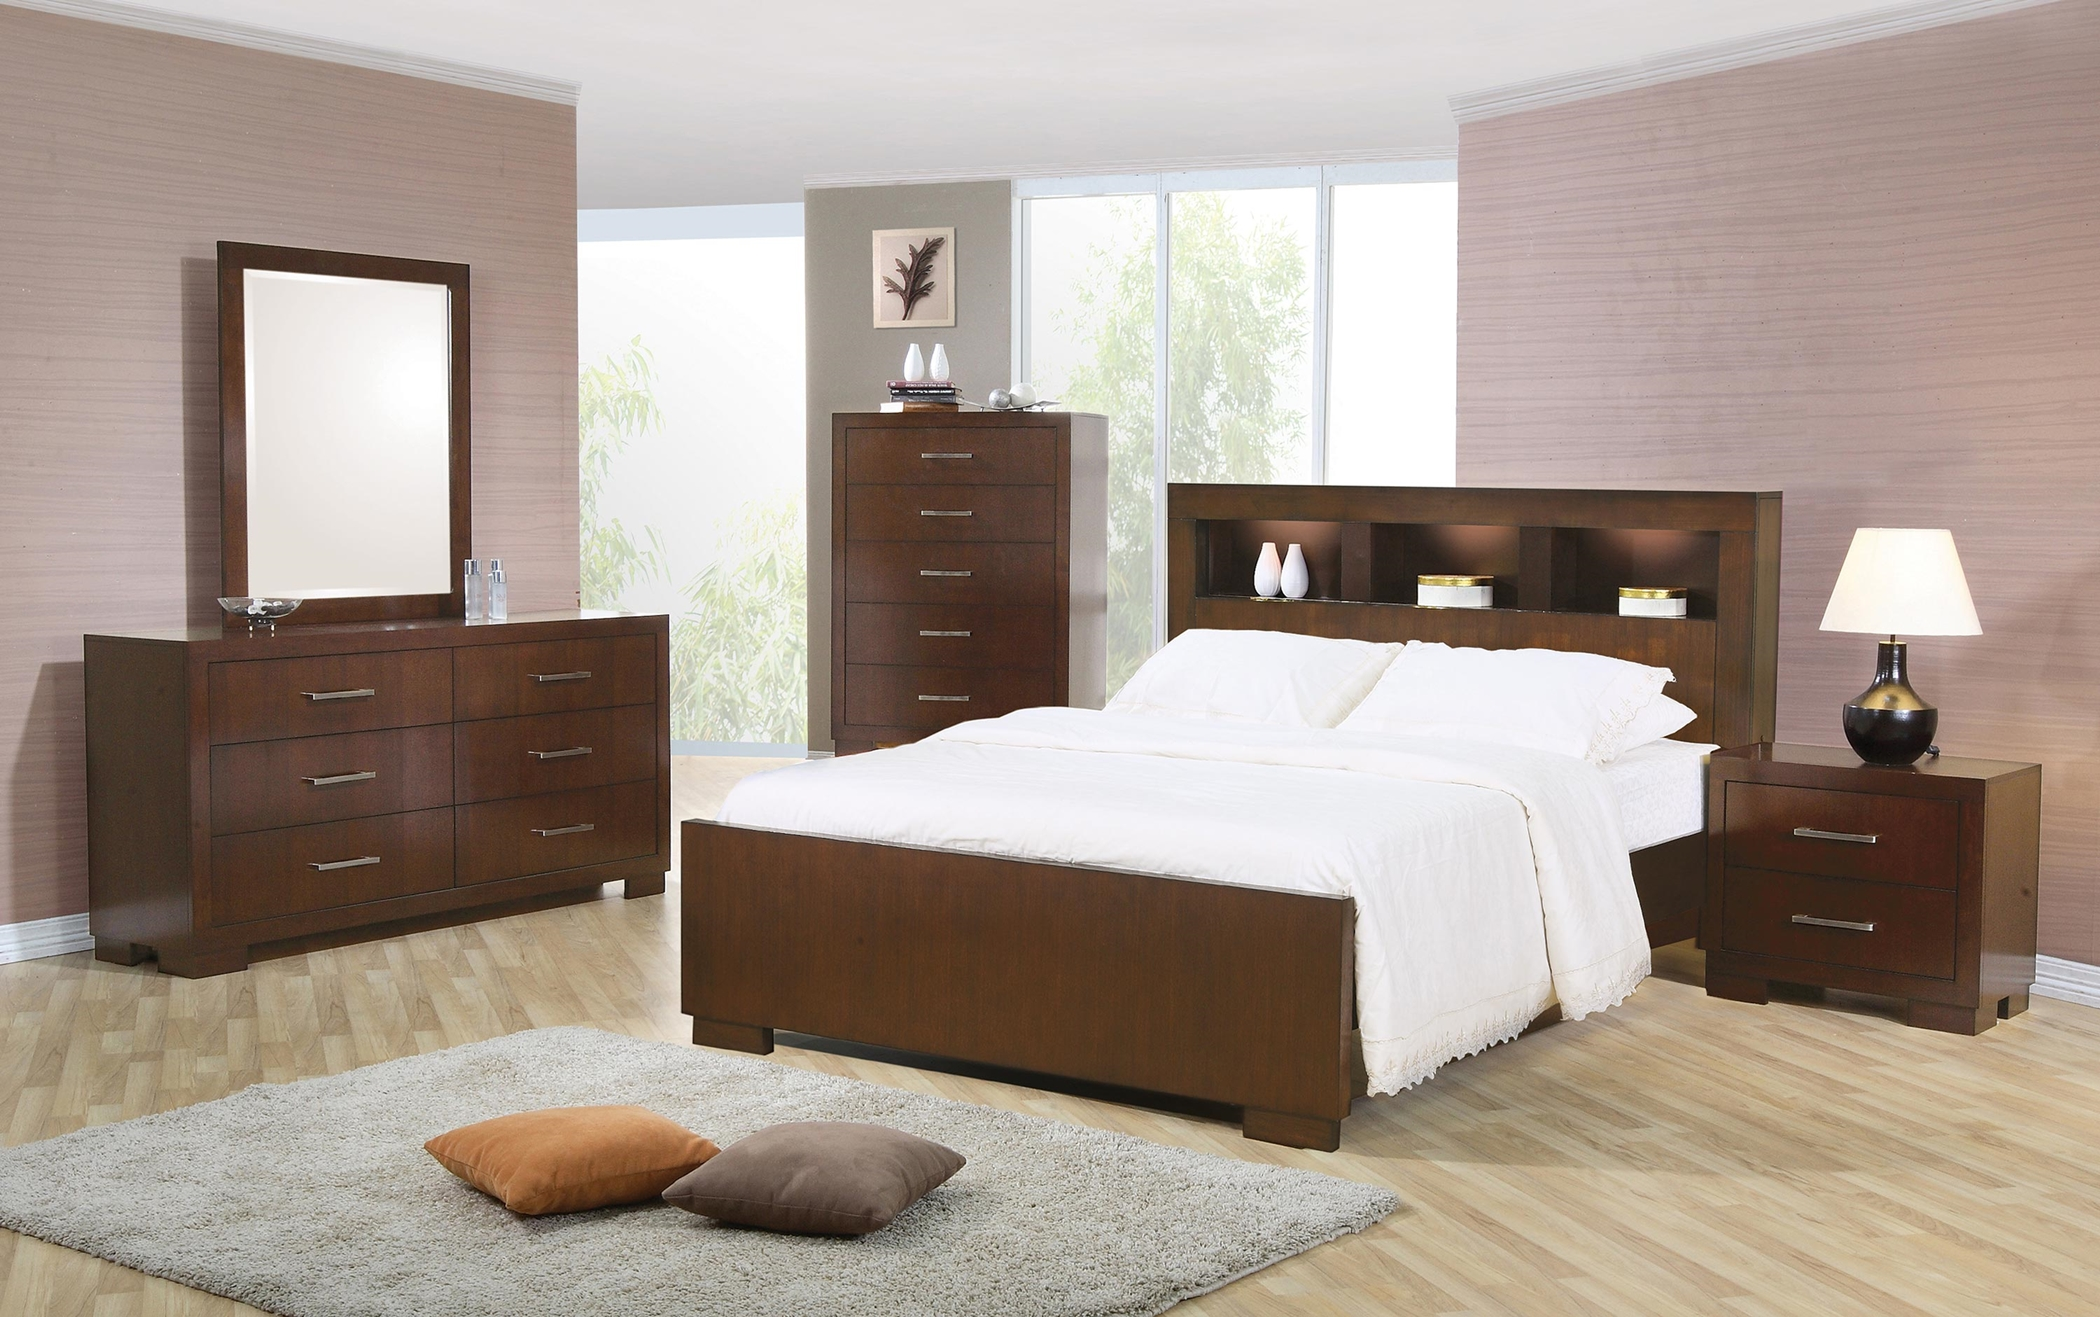 Jessica Dark Capp. King 5-Pc. With Storage Bed